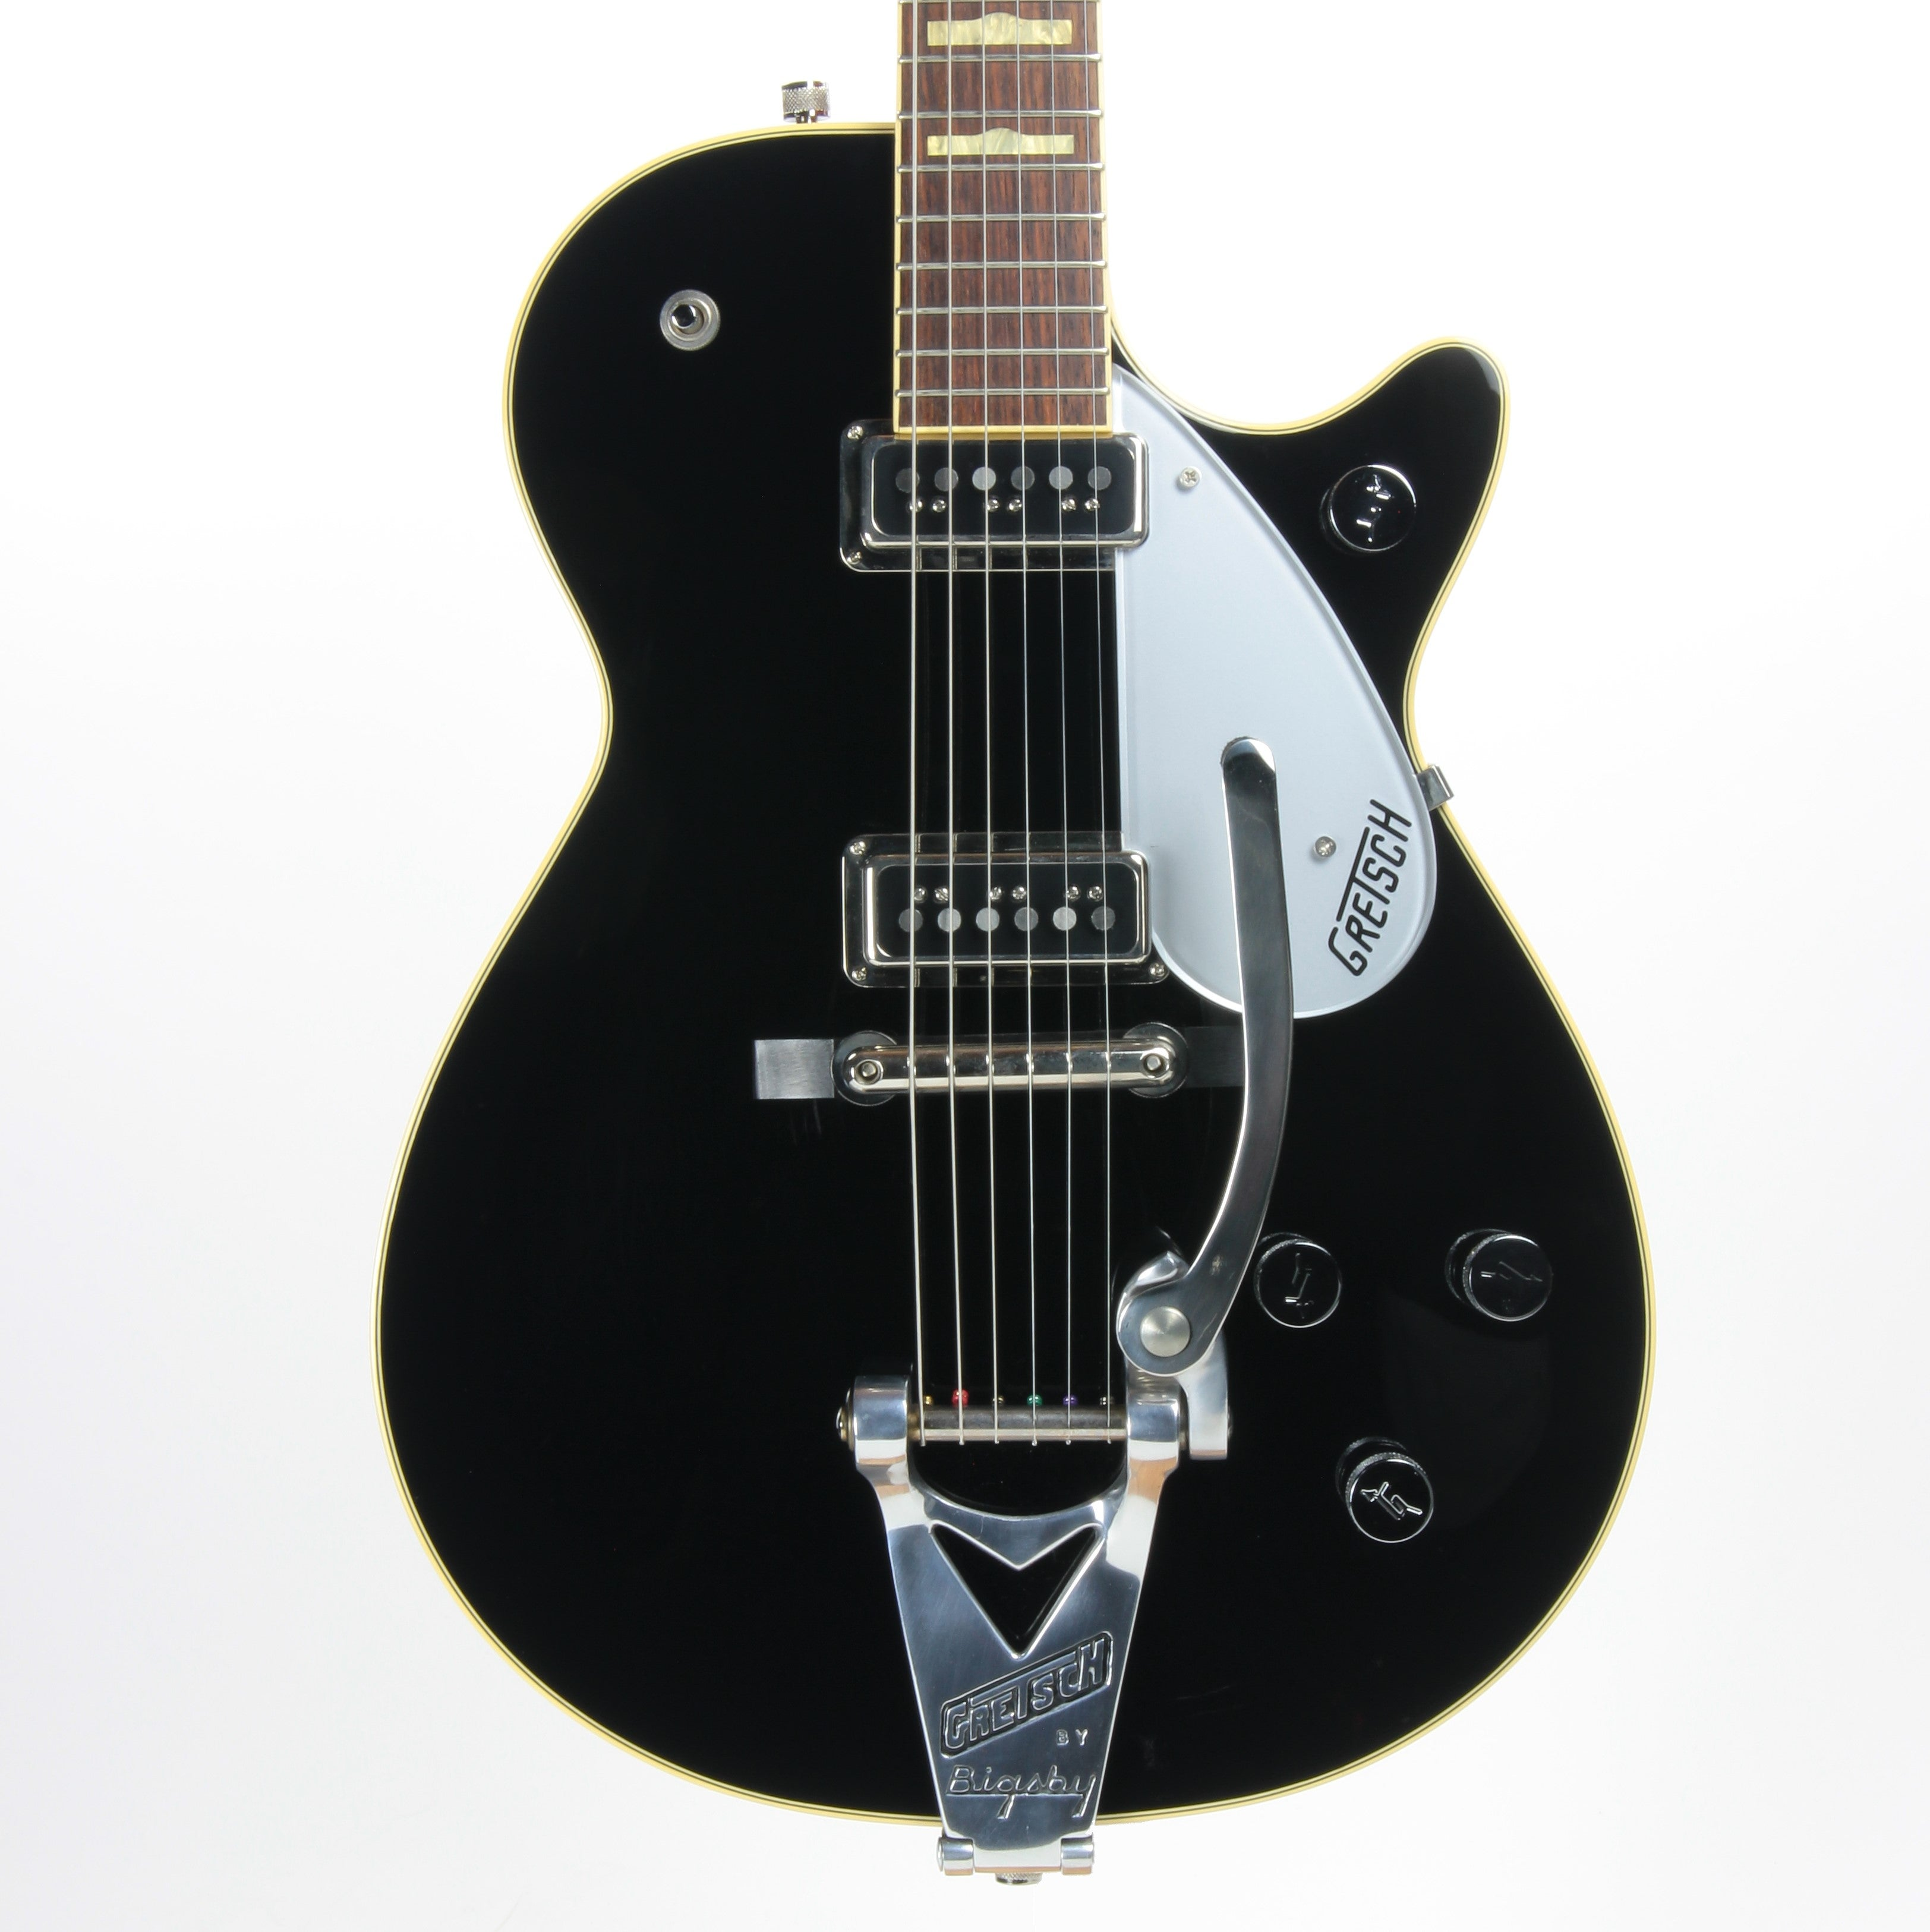 2006 Gretsch Duo Jet G6128TDS Black 6128 - DynaSonics, George Harrison Specs!